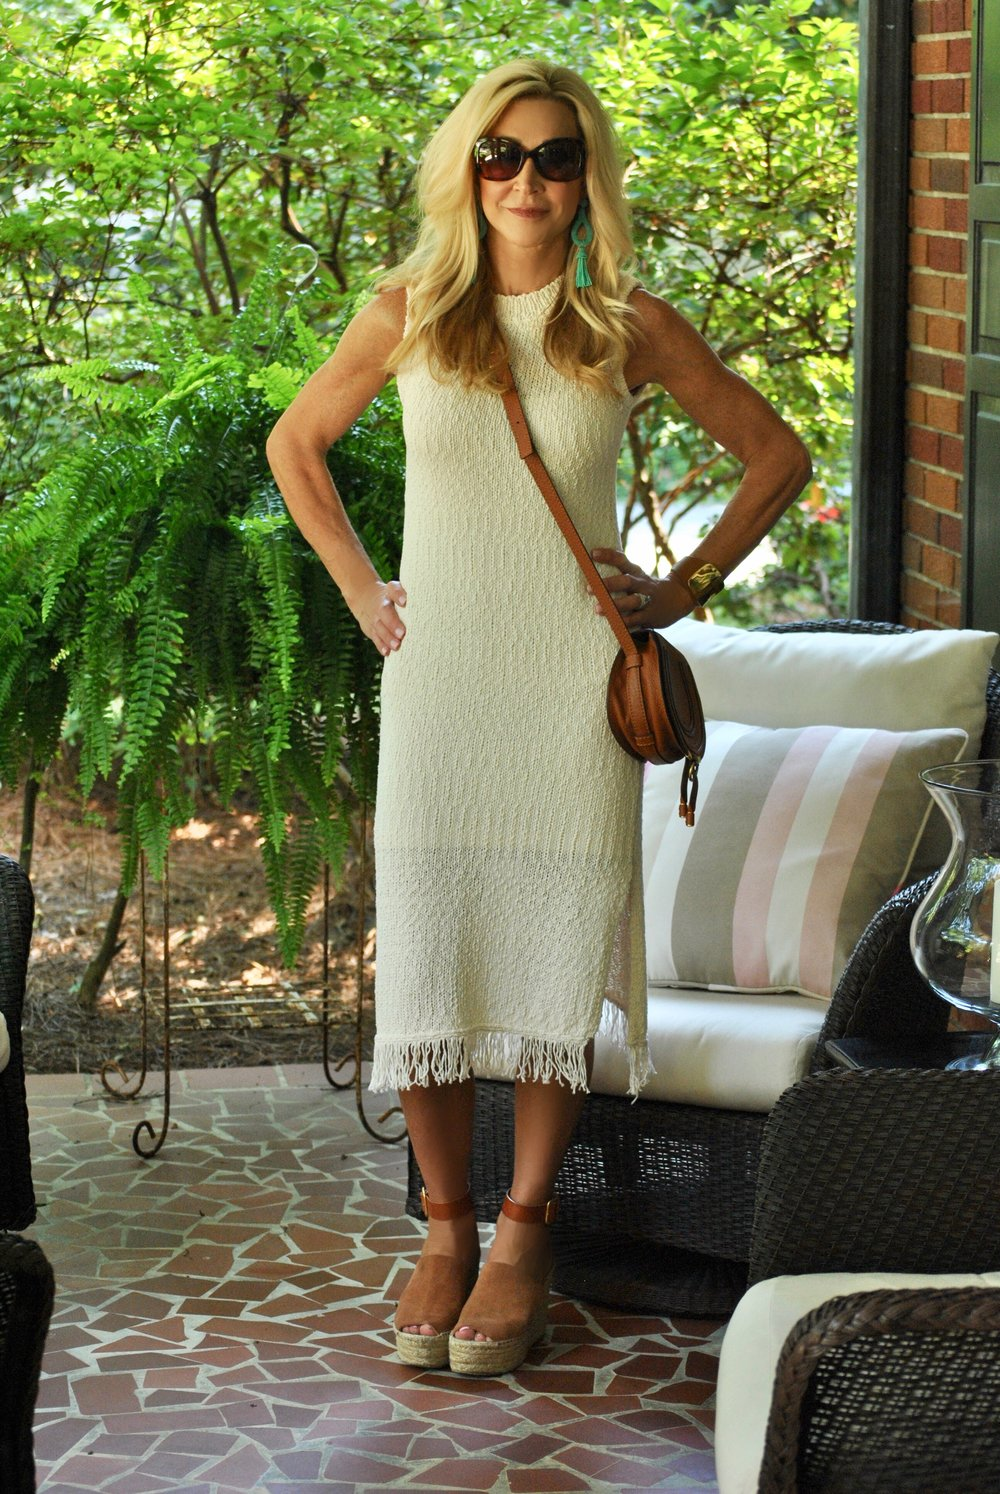 Anthropologie dress, Chloe shoes and bag and Michael Kors sunglasses